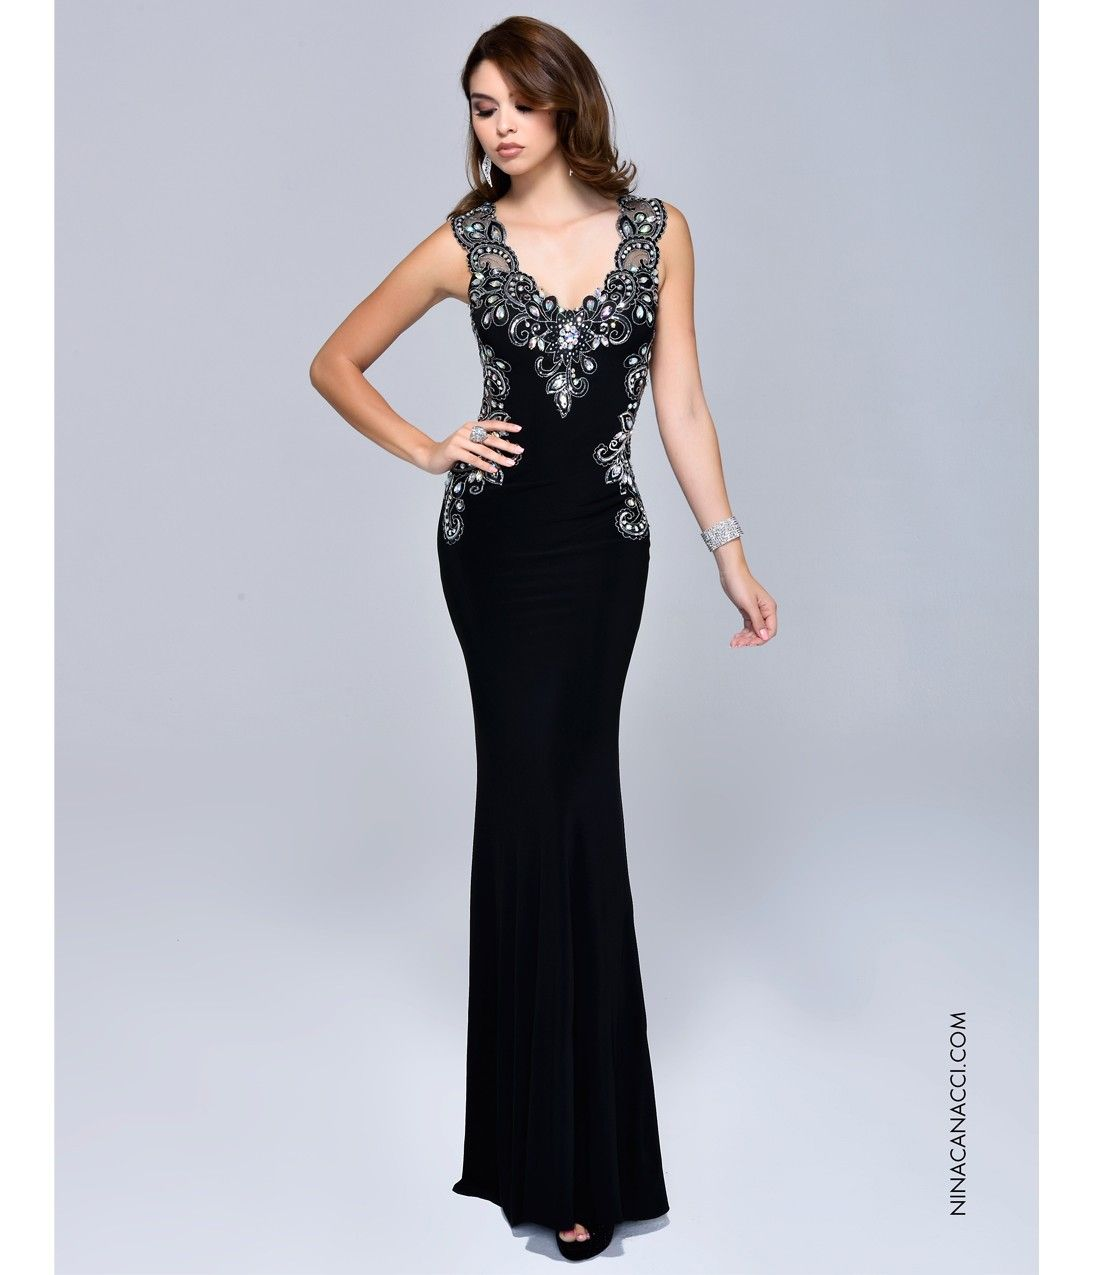 1920s style long prom dresses